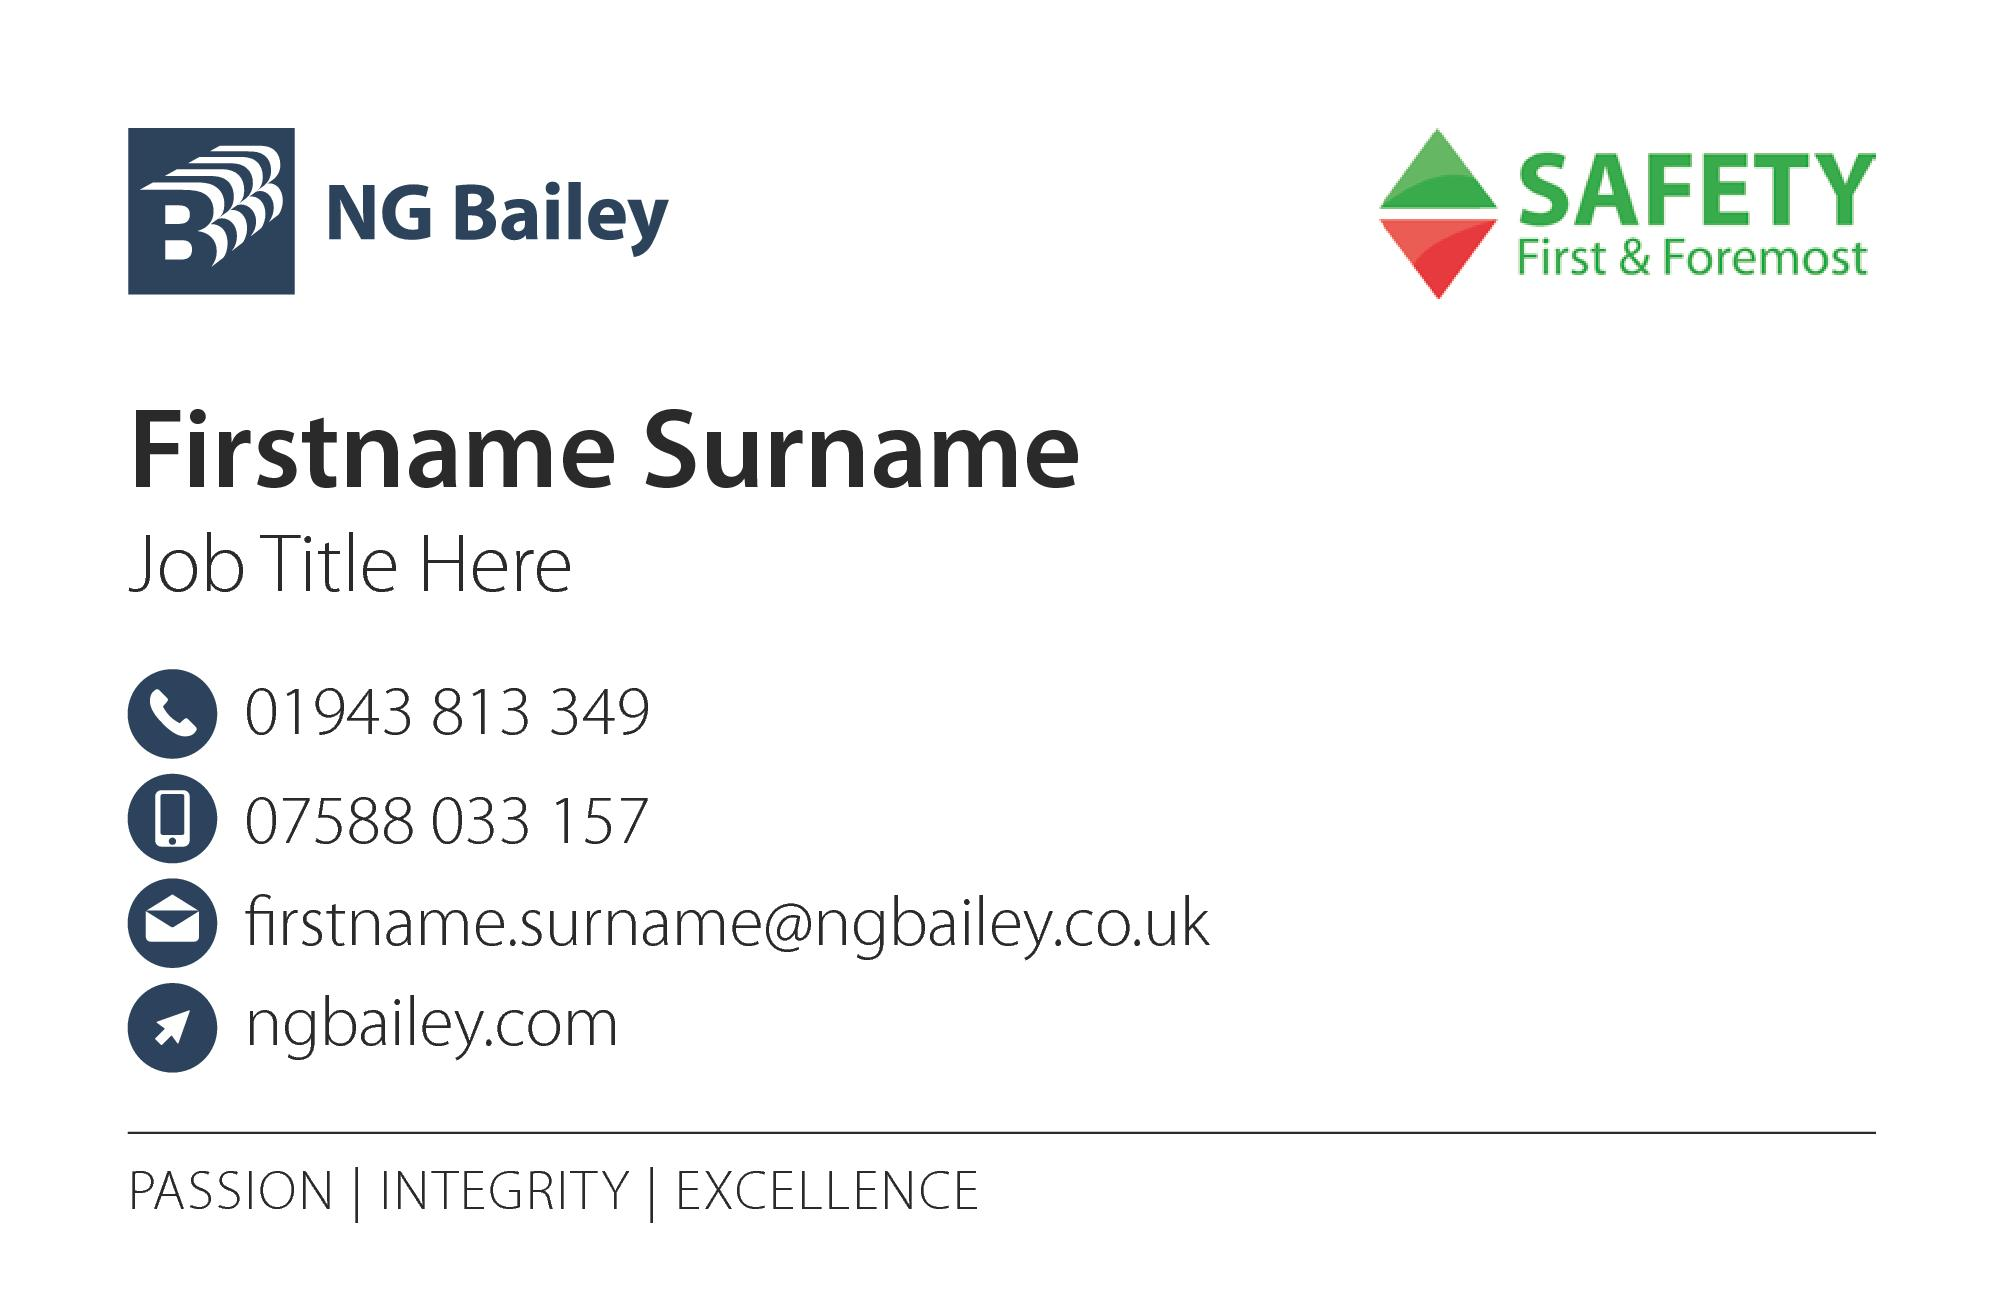 NGB_BUSINESS_CARD_FRONT.jpg